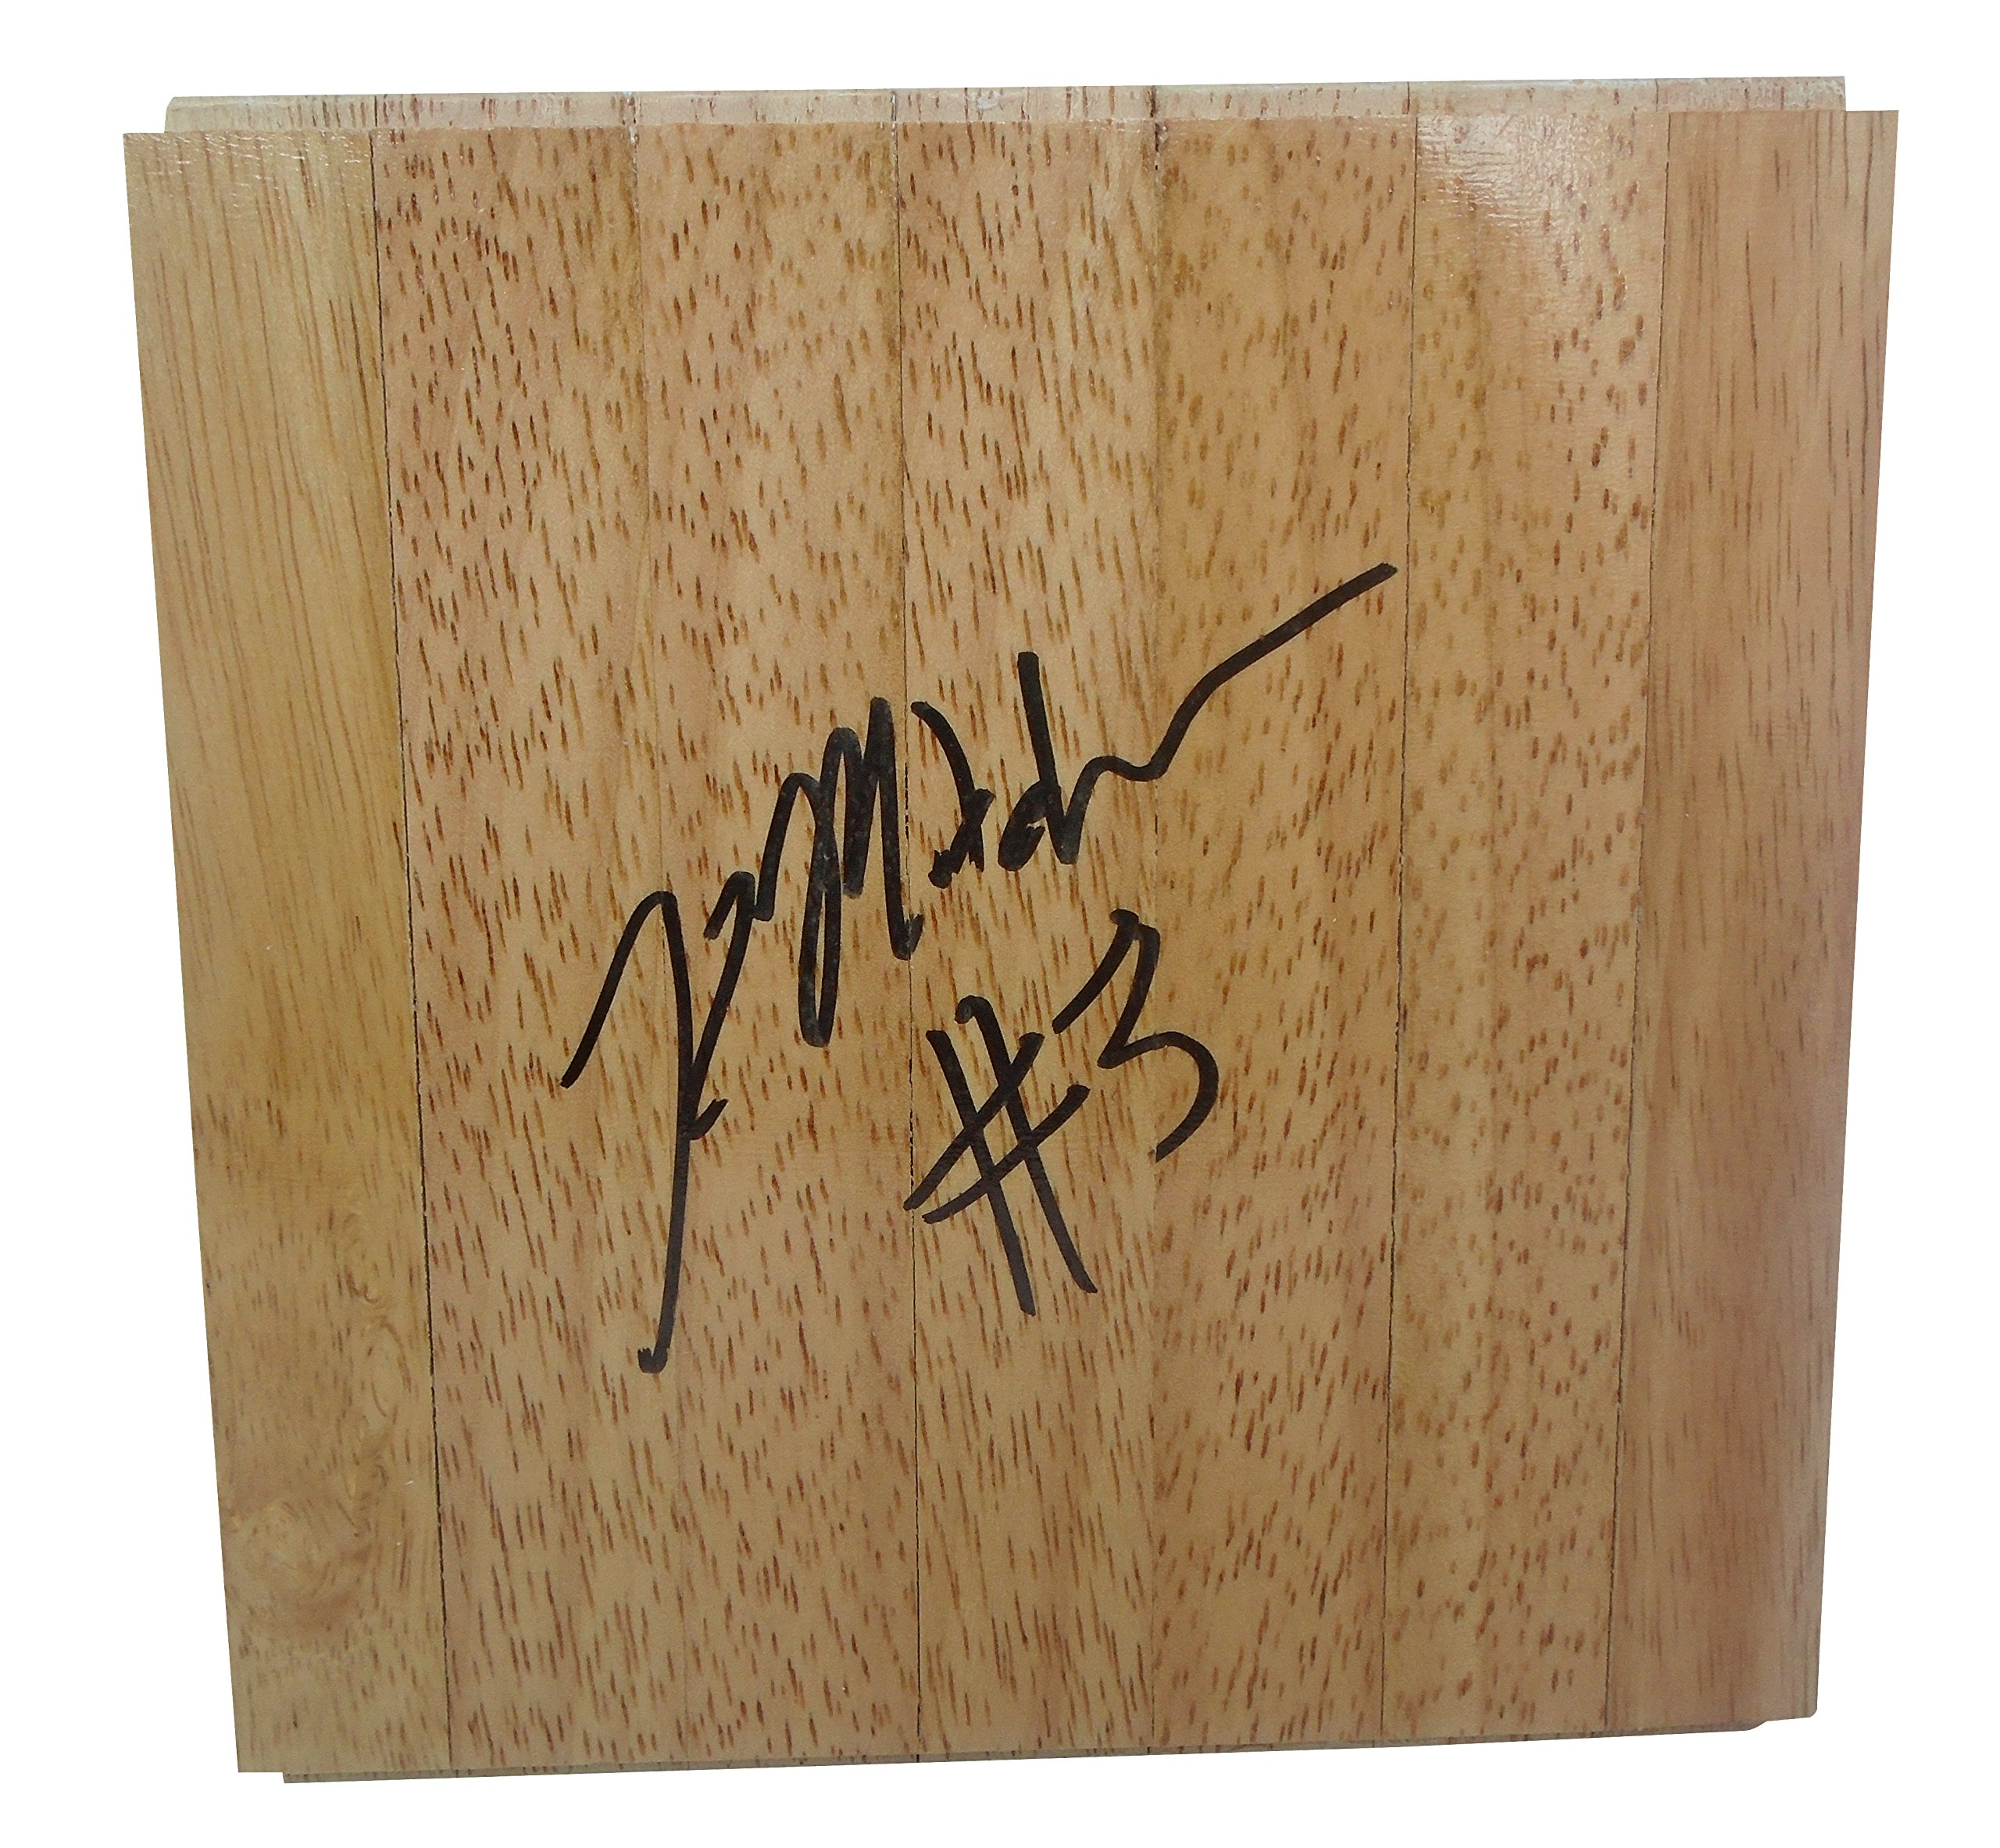 Indiana Fever Kelsey Mitchell Autographed Hand Signed 6x6 Parquet Floorboard with Proof Photo of Signing, Team USA, OSU Ohio State University Buckeyes, COA Basketball Floor Boards